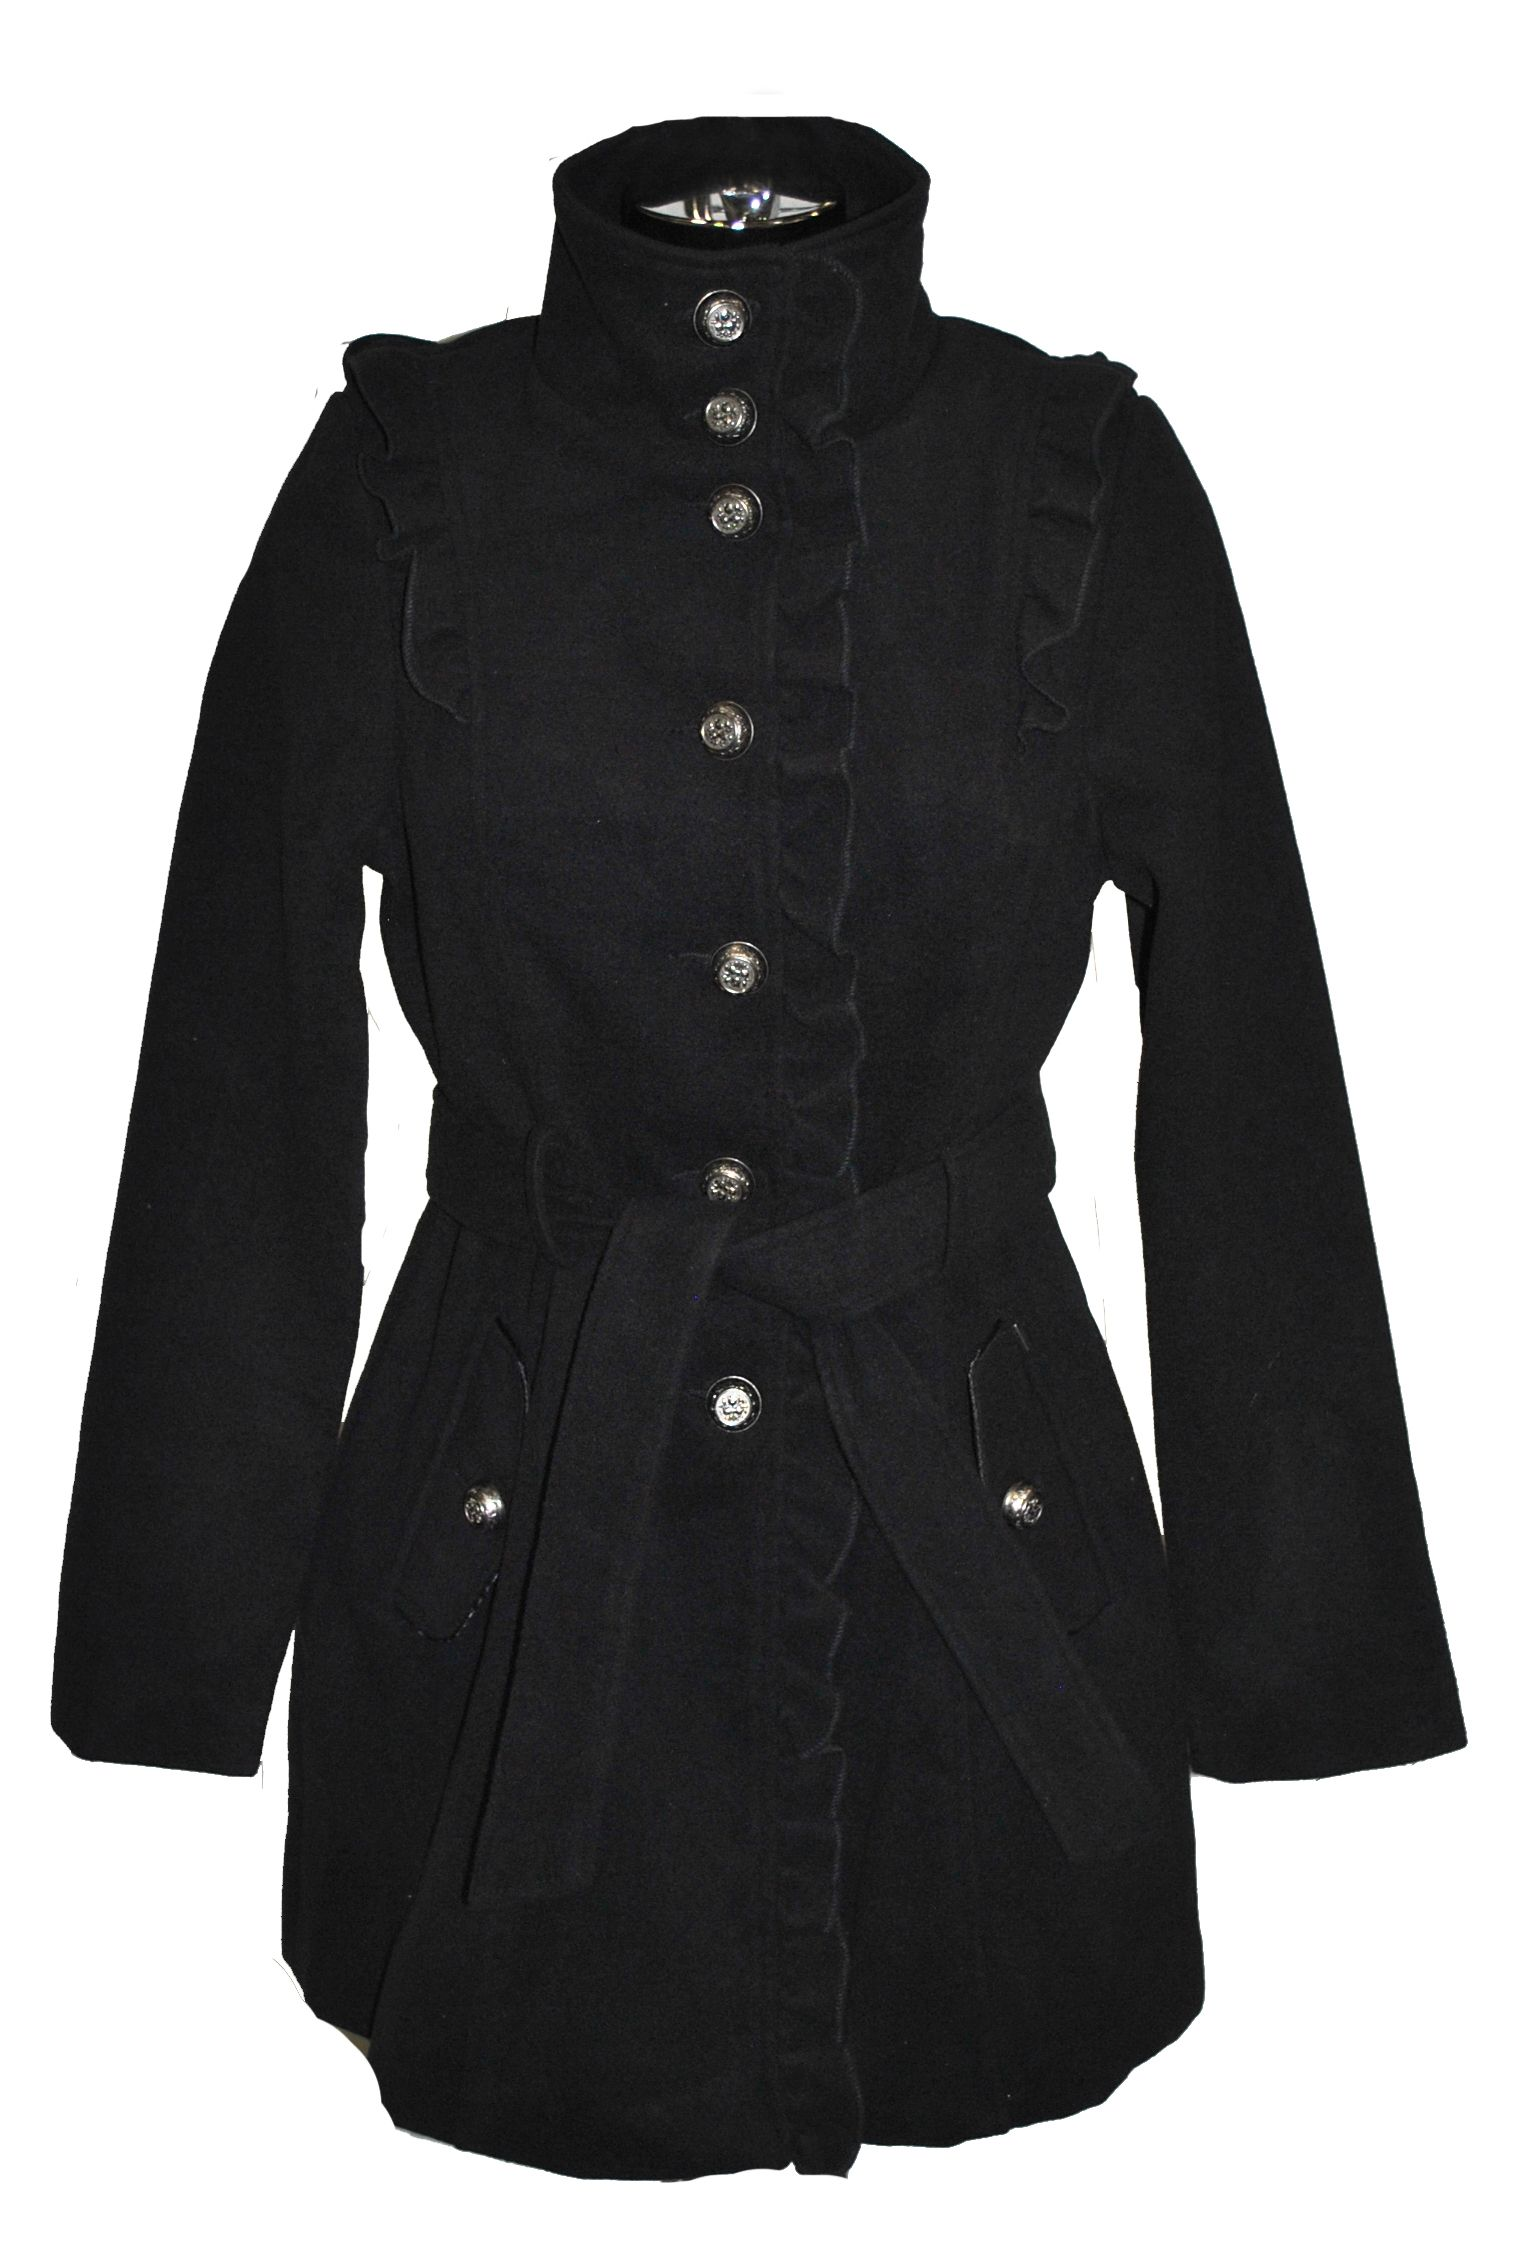 Black Military Style Coat with Frills